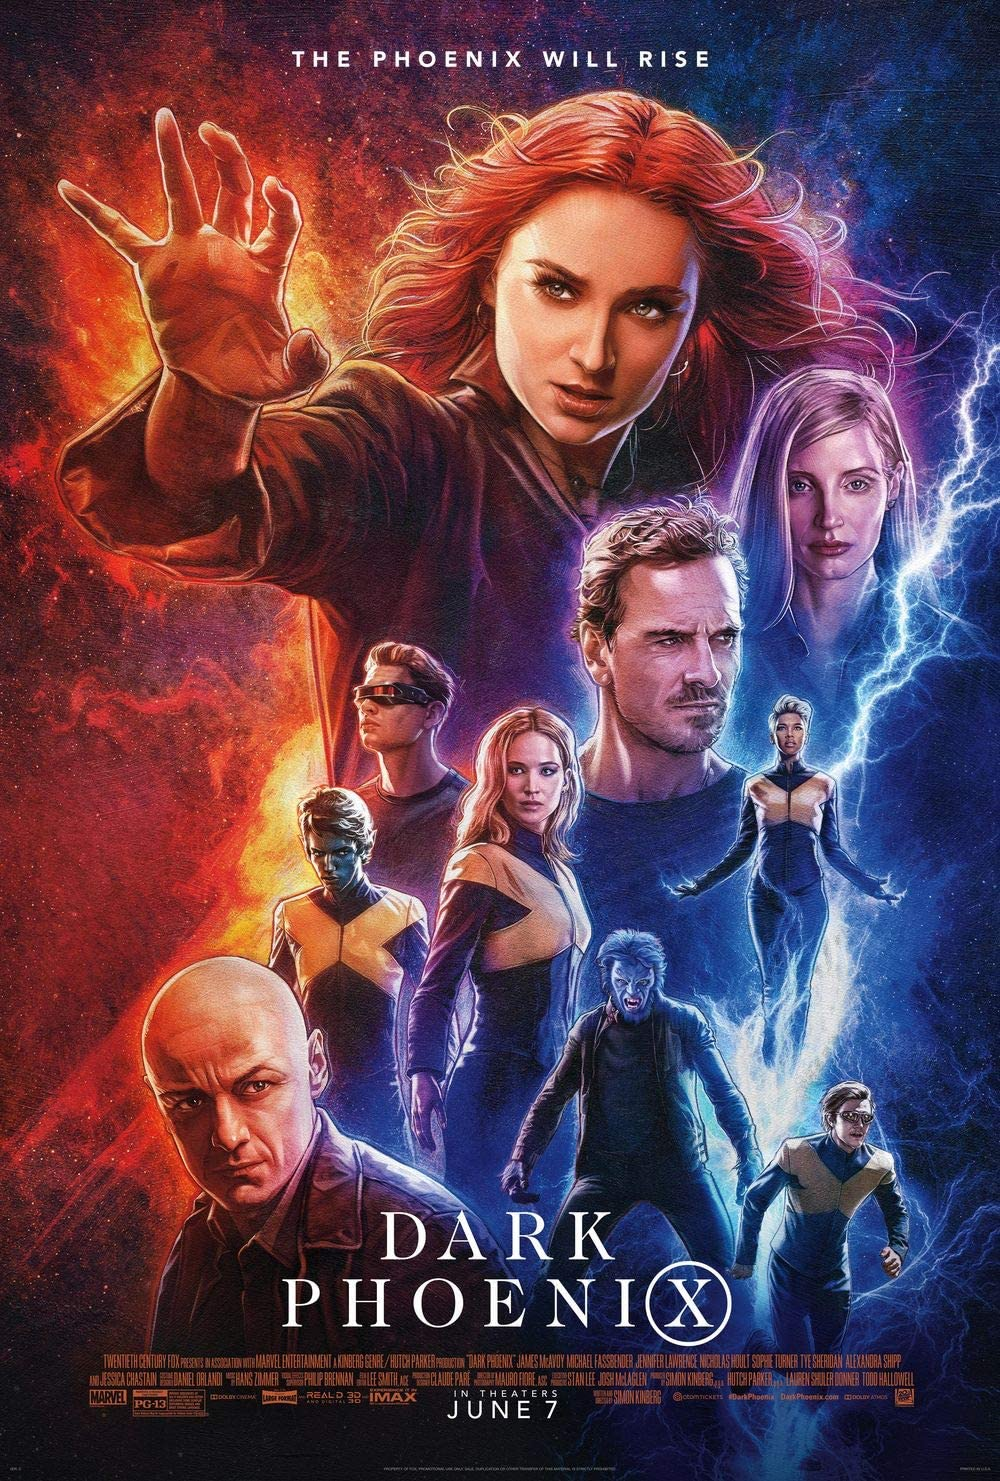 Amazon.com: hotprint X-Men Dark Phoenix - Movie Poster Wall Decor - 18 by  28 inches. (NOT A DVD): Posters & Prints